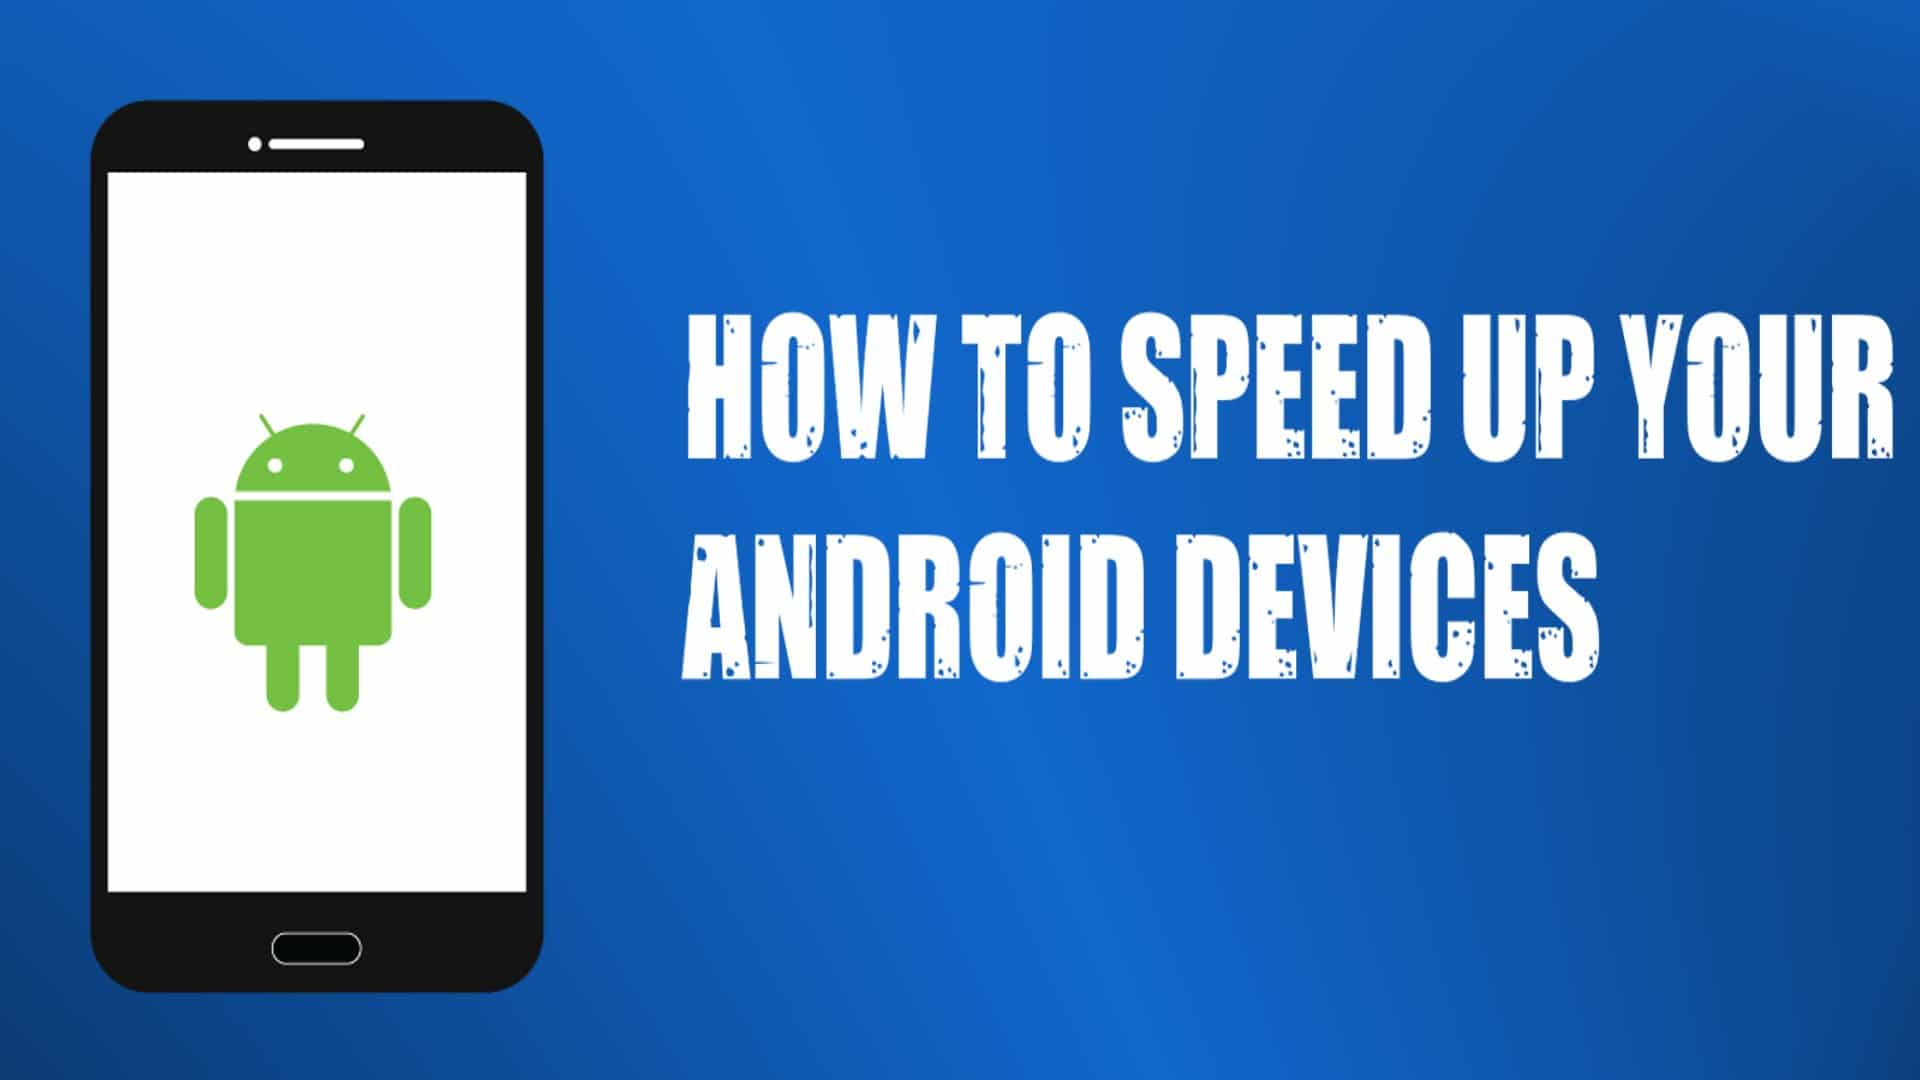 How to speed up your old Android devices